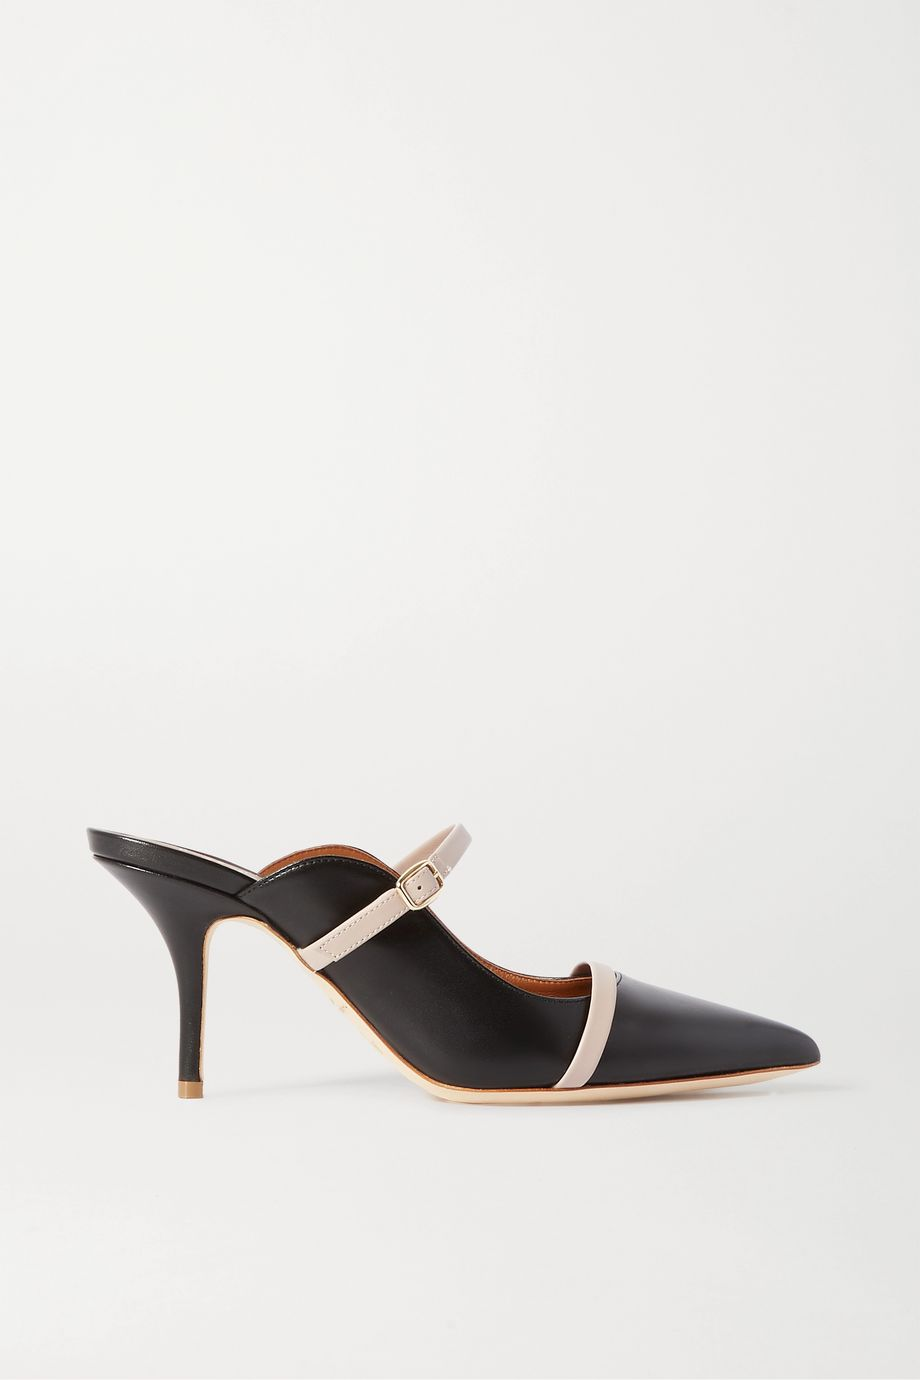 Malone Souliers Melody 70 leather mules